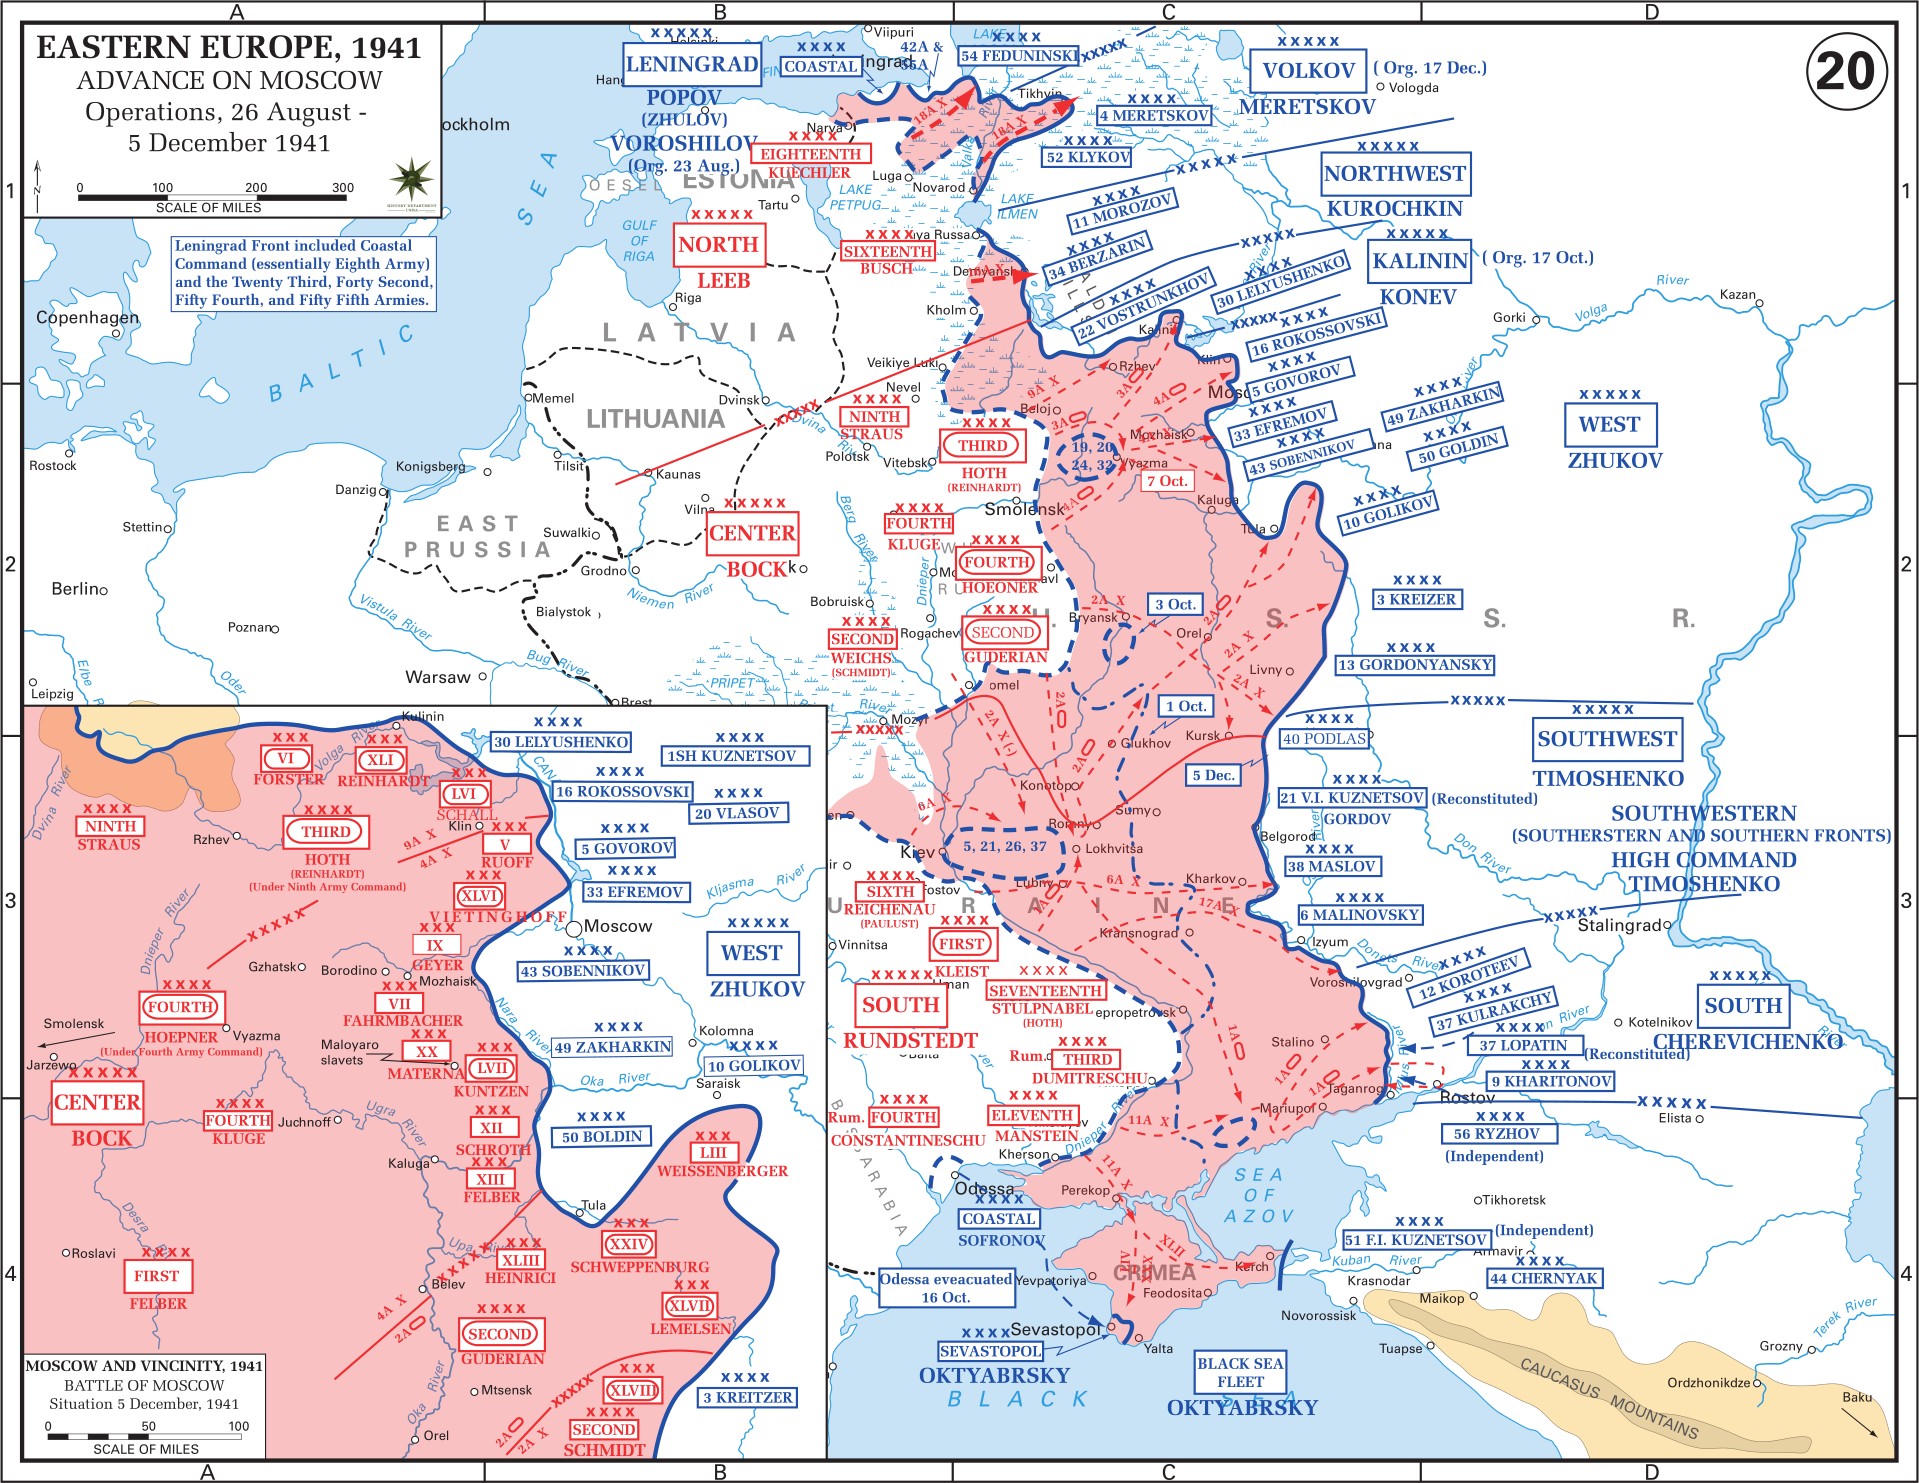 an analysis of russian wwii offensive of 1941 The 40th army of the soviet union's soviet army was an army-level command that participated in world war ii from 1941 to 1945 and was reformed specifically for the soviet war in afghanistan from 1979 to circa 1990.